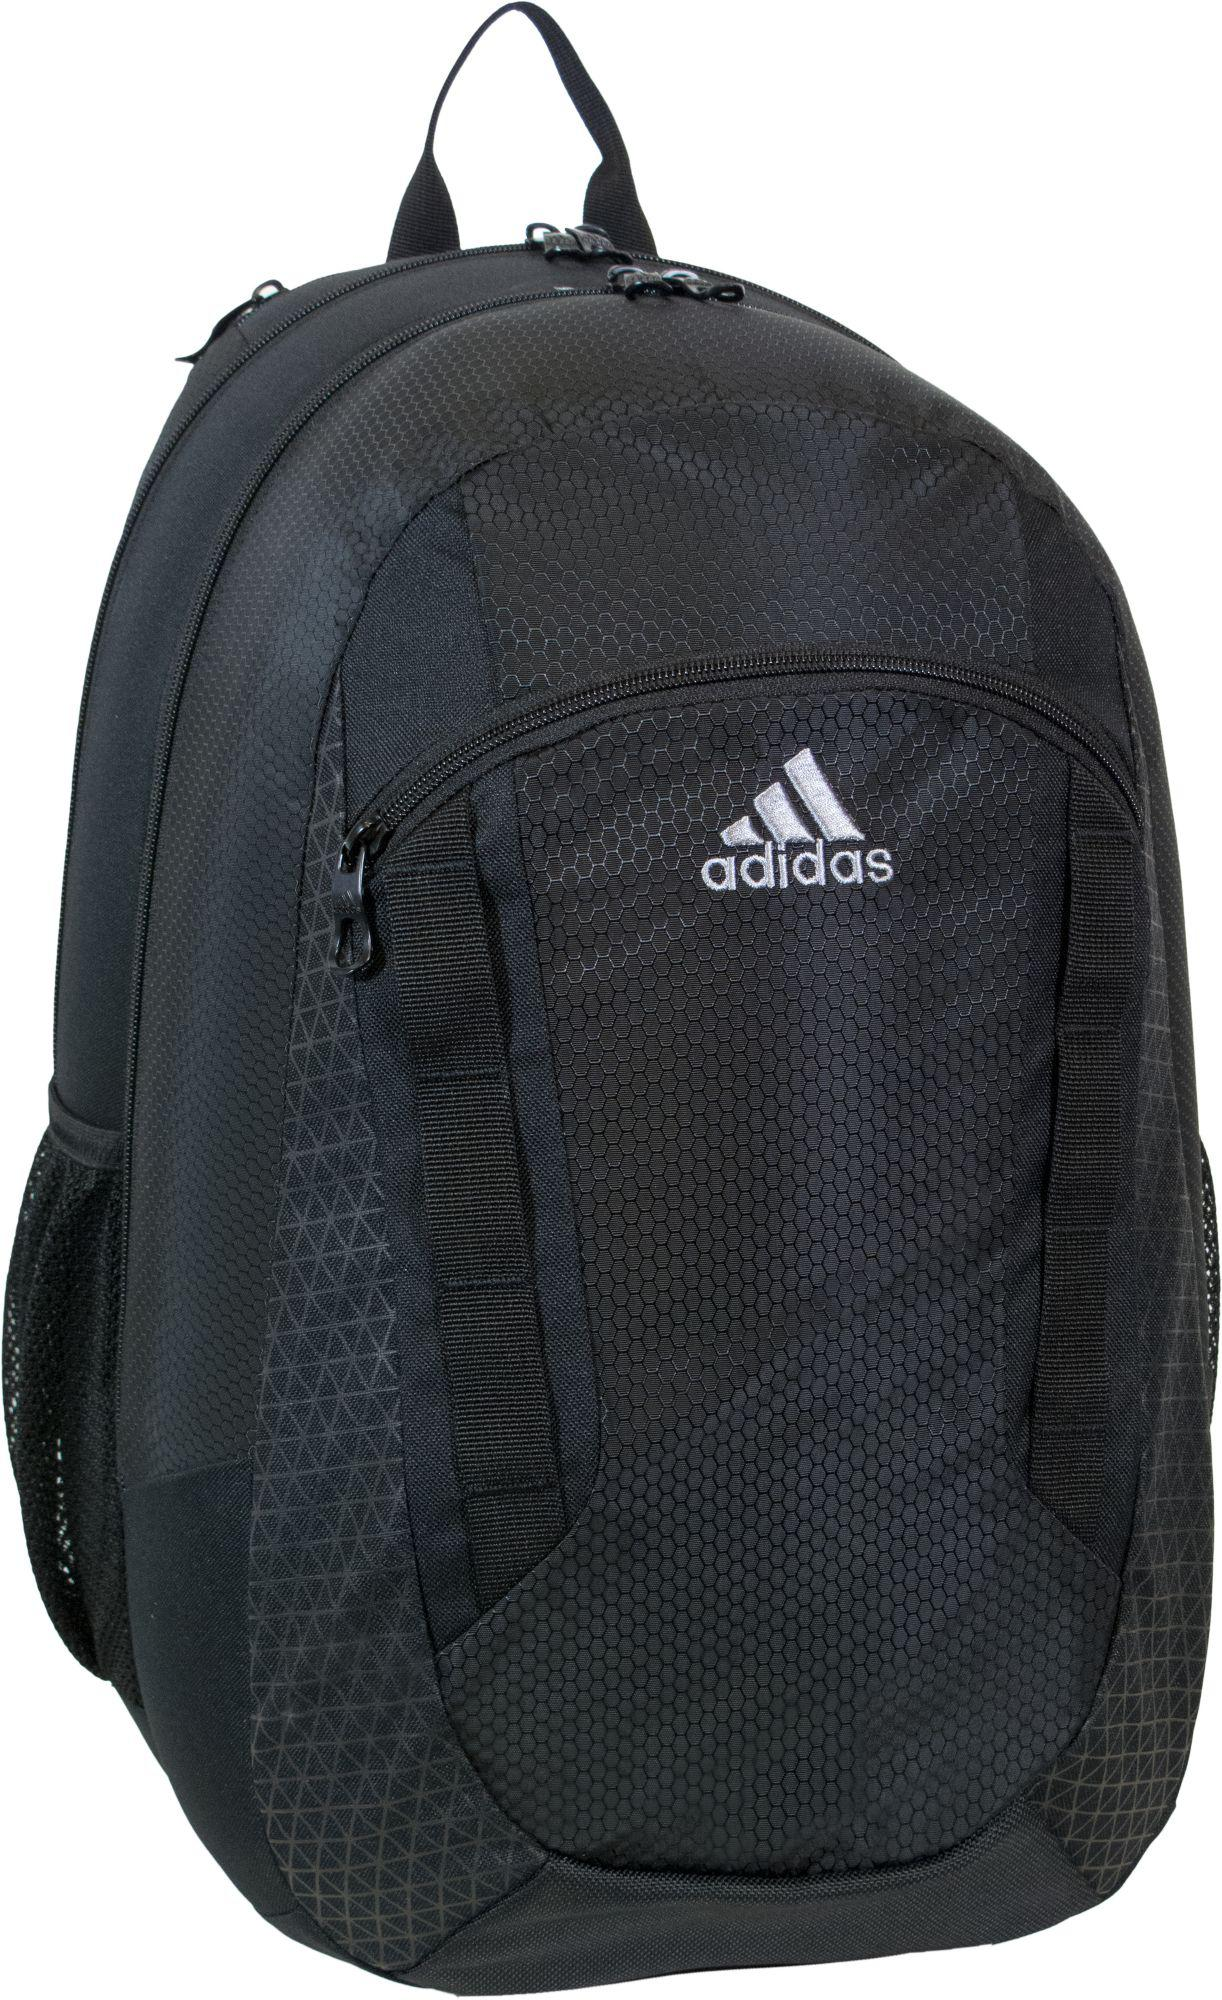 451ff39389 Lyst - adidas Excel Iii Backpack in Black for Men